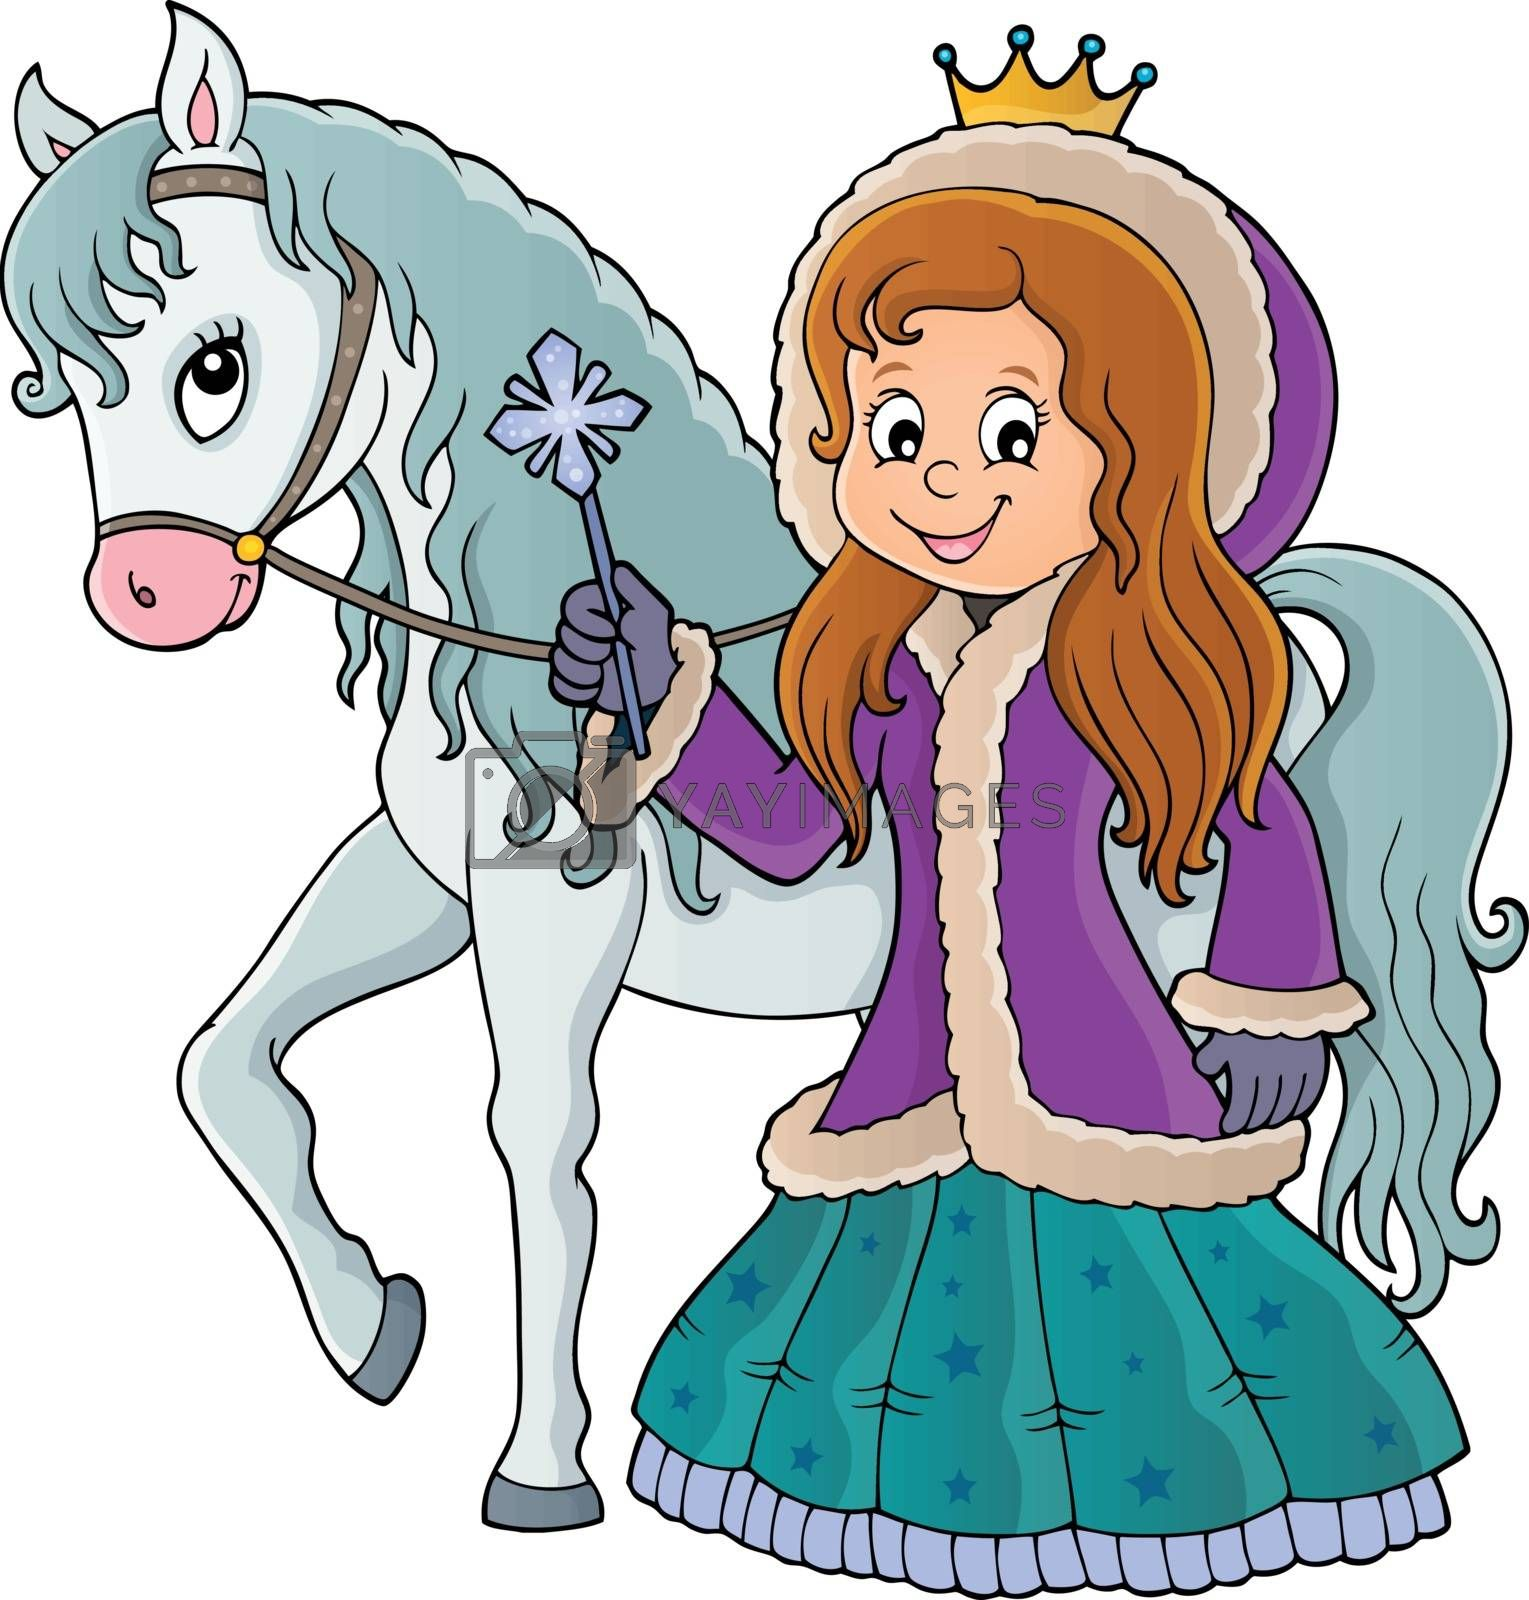 Winter princess with horse image 1 - eps10 vector illustration.